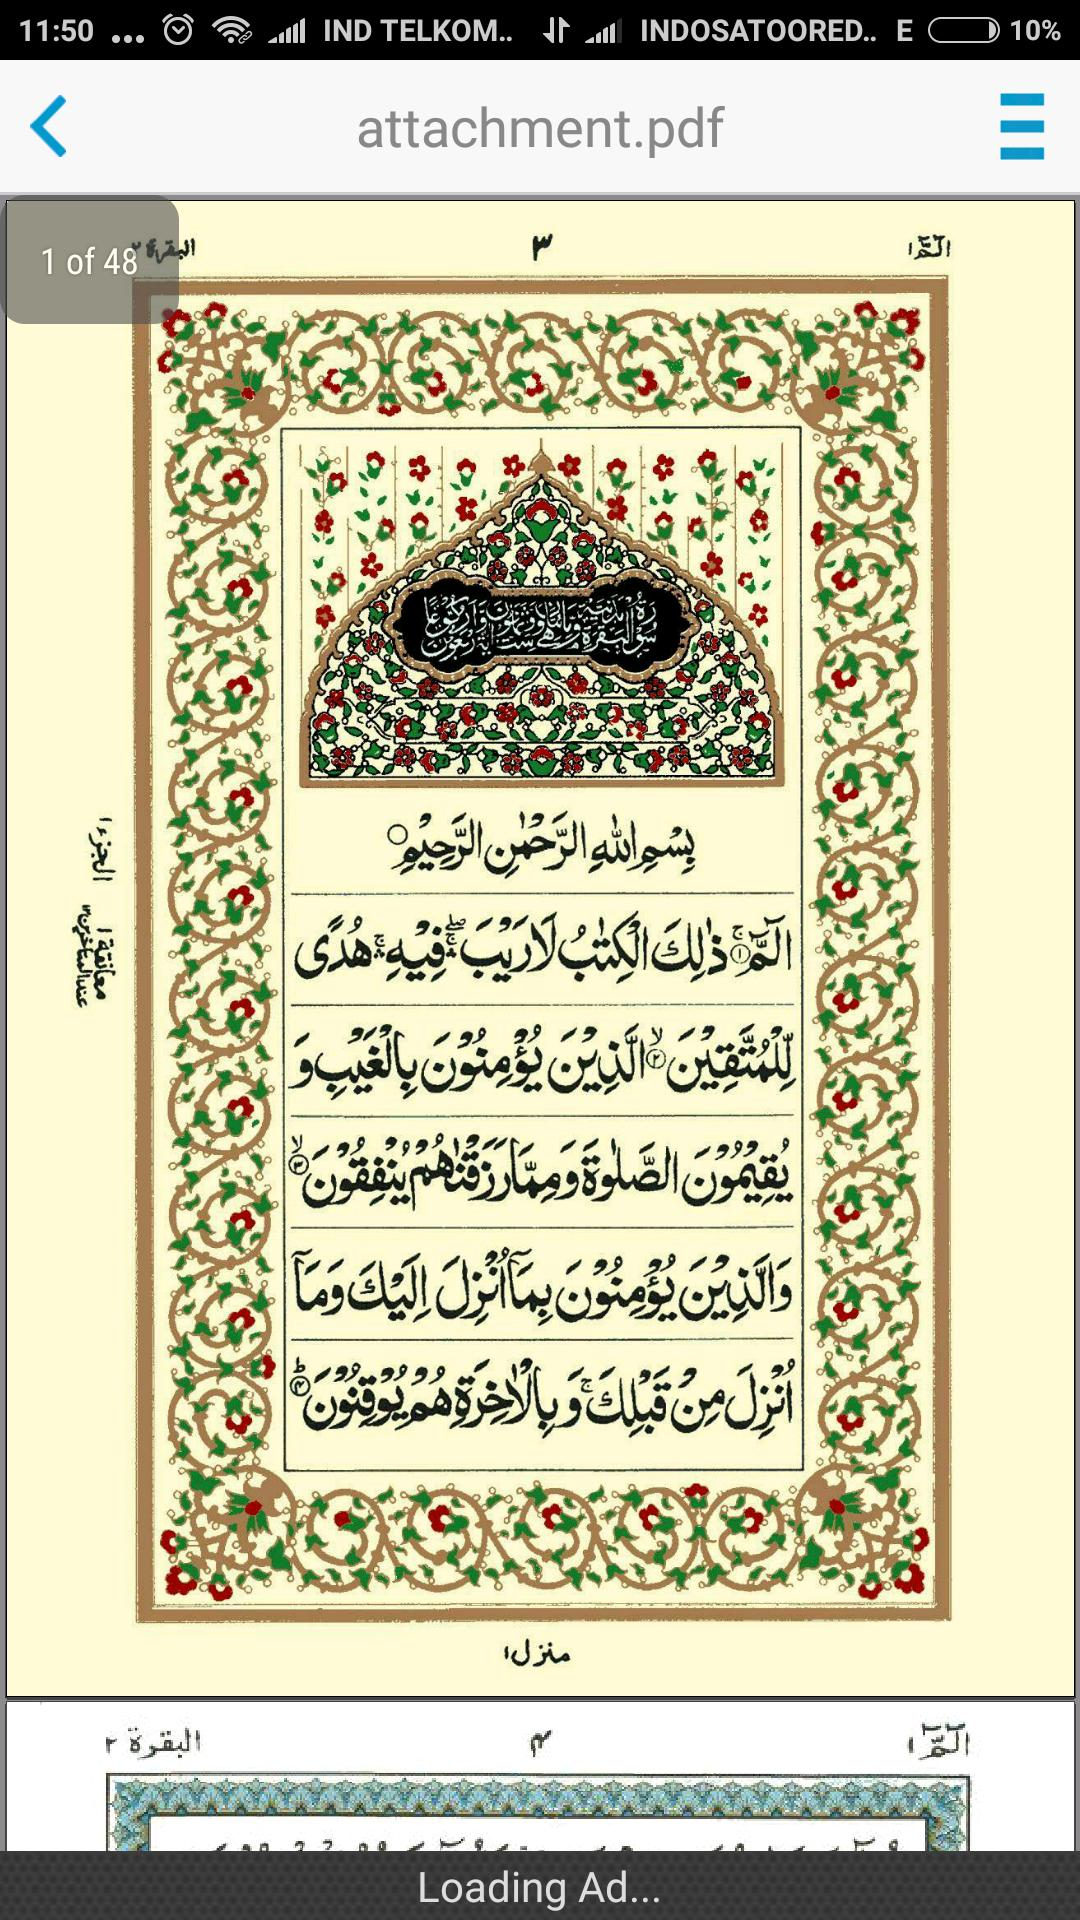 Surah Al-Baqarah (Offline) for Android - APK Download